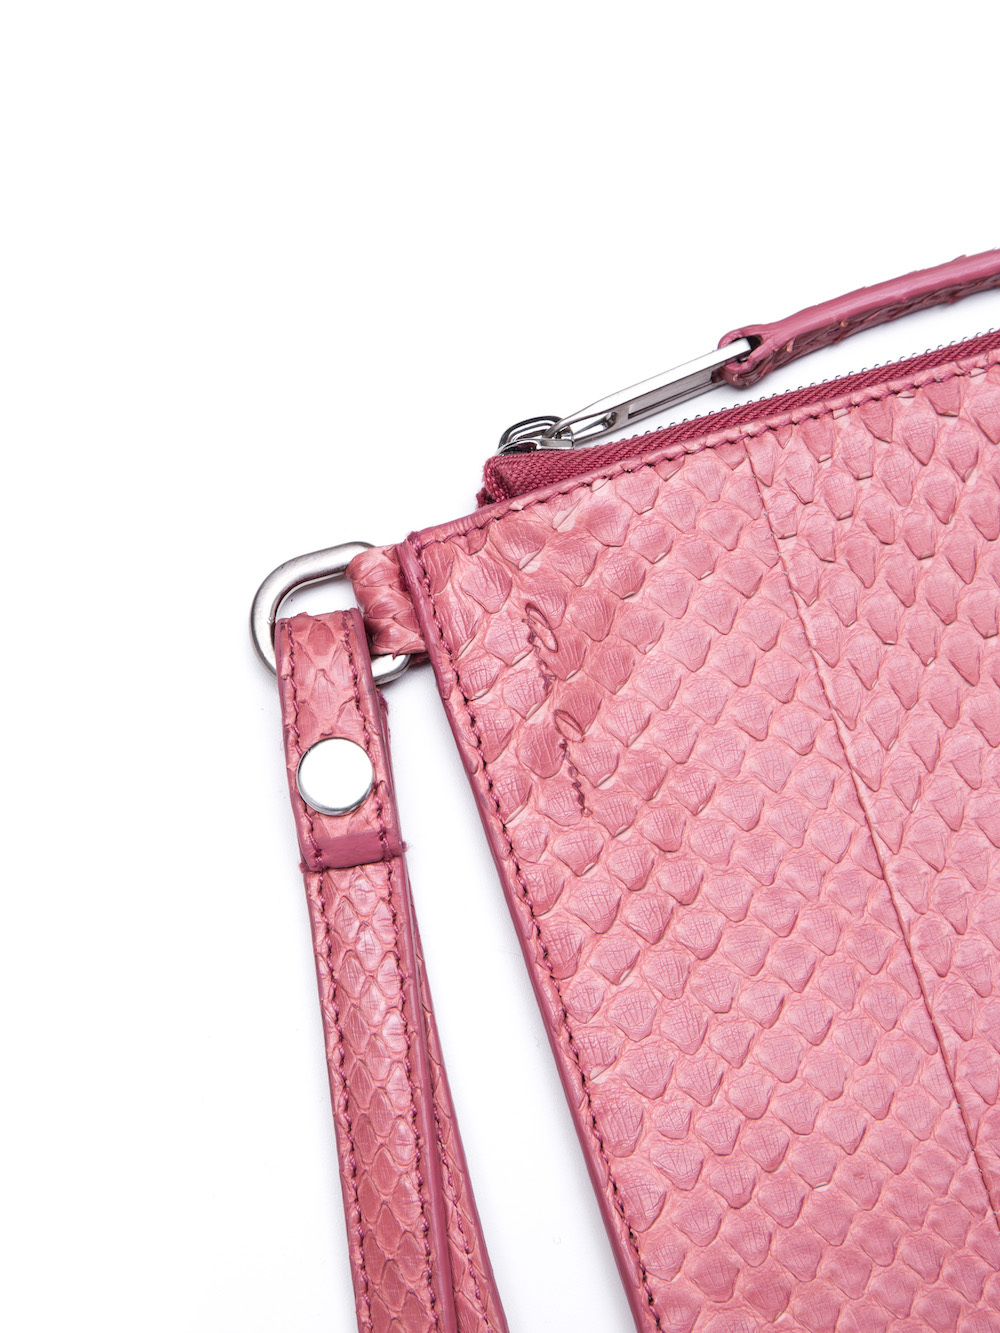 RICK OWENS LARGE ZIPPED POUCH IN PINK PYTHON LEATHER